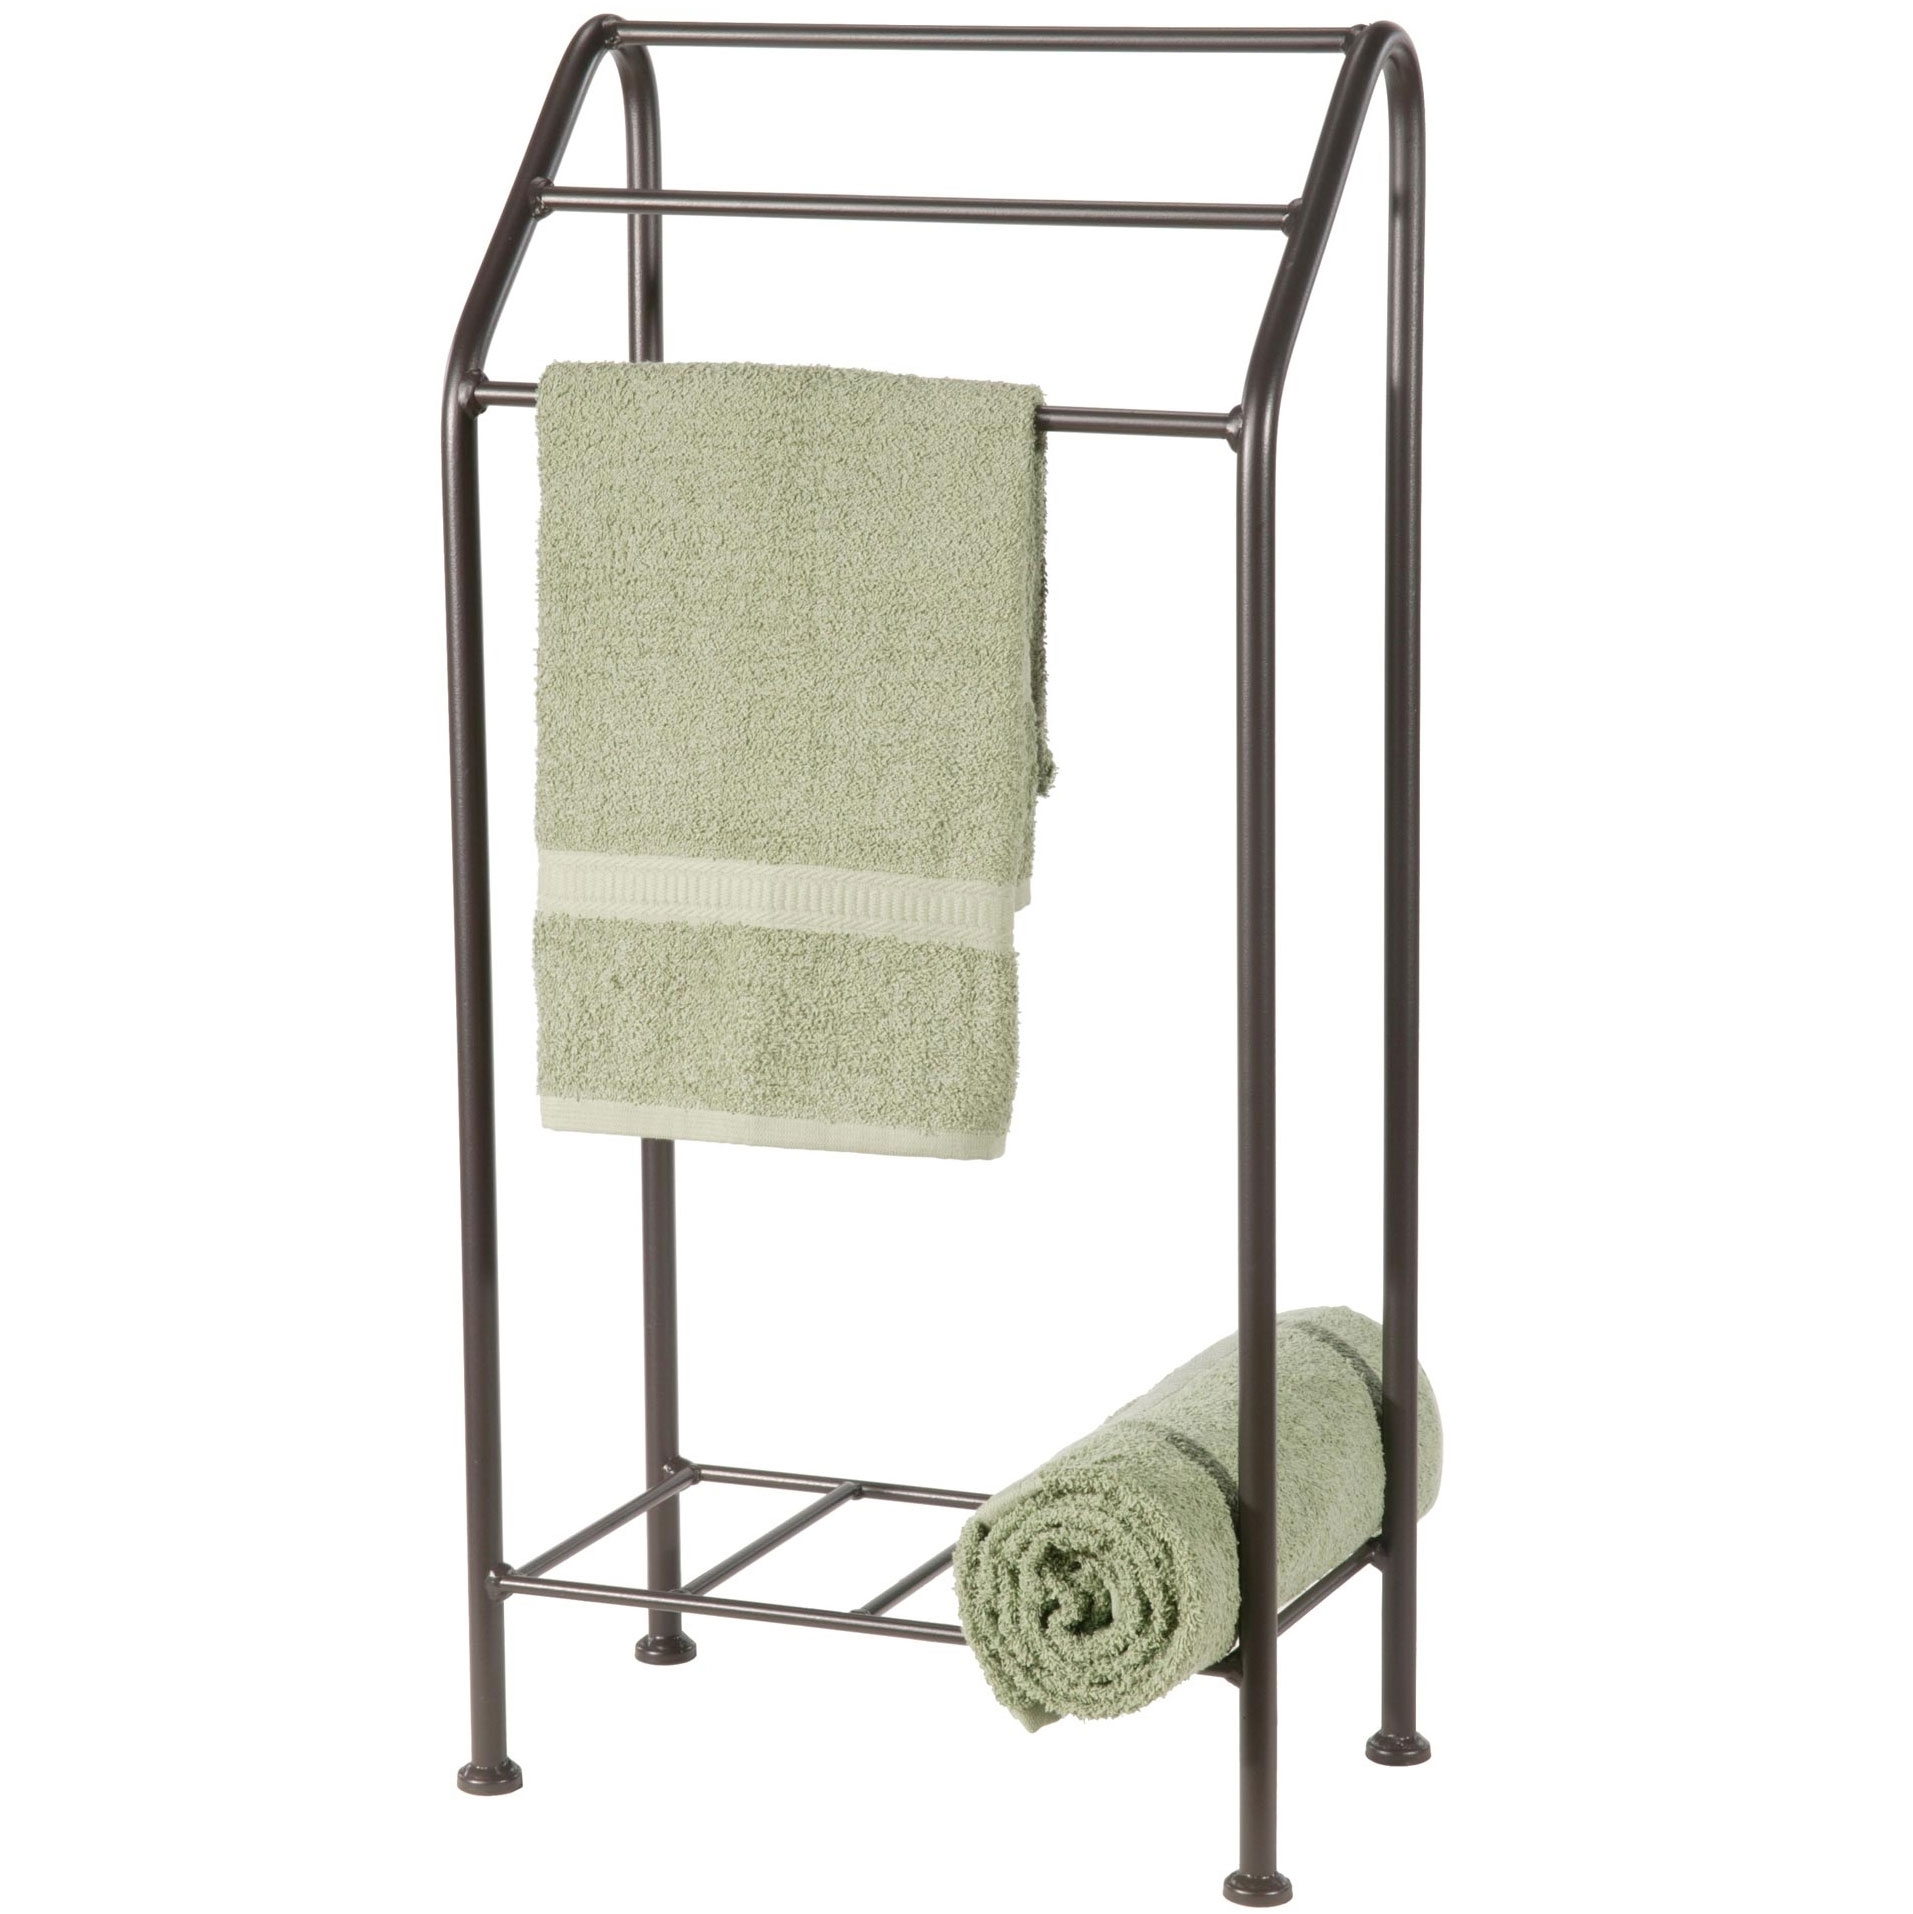 Beauteous Bathroom Larger Photo Free Standing Monticello Wrought Iron Towel Rack Standing Towel Rack Walmart Standing Towel Rack houzz 01 Standing Towel Rack